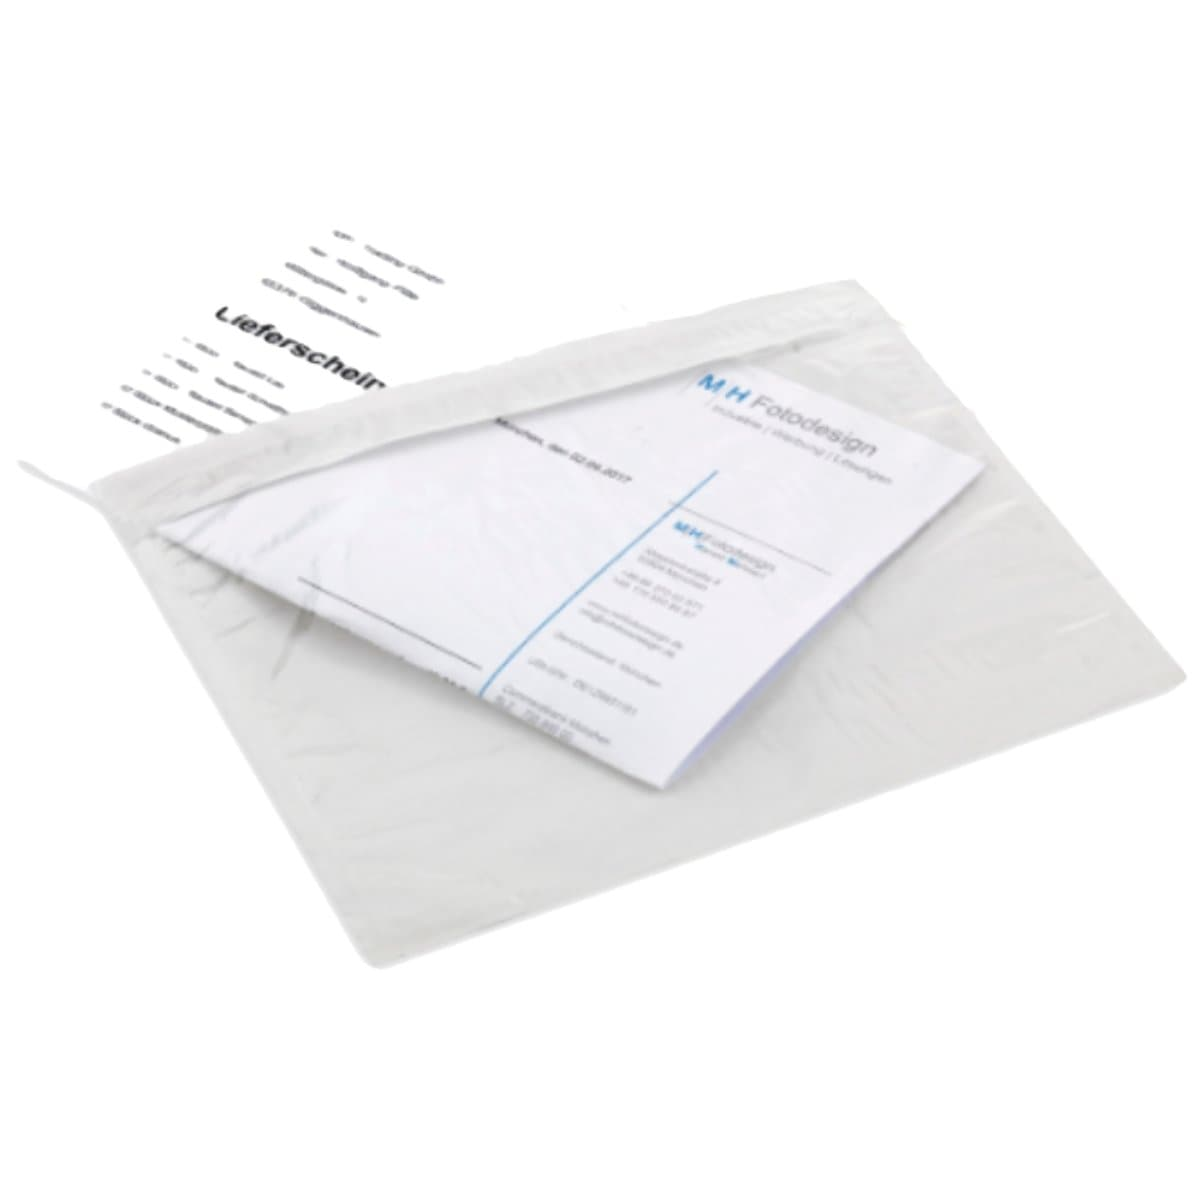 Clear Self-Adhesive Shipping Document/Bill Pouches